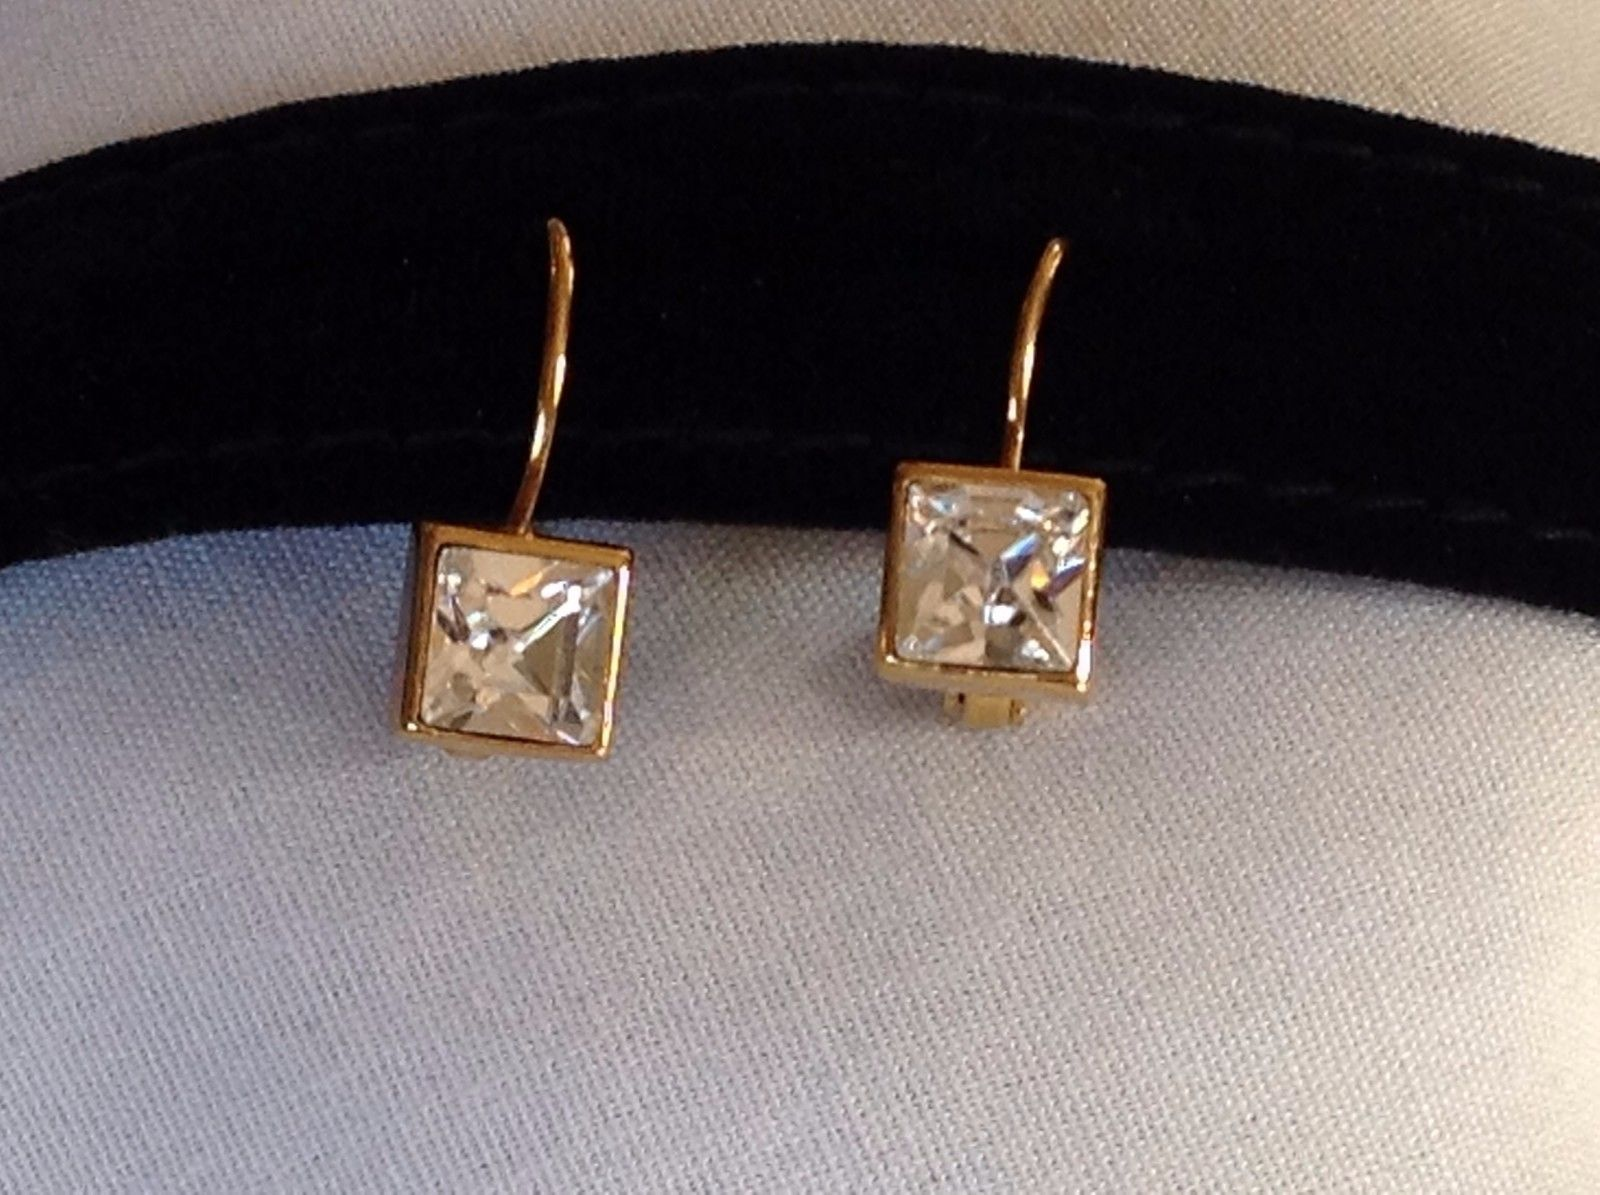 New NWT Annaleece 22 Karat Gold Square Clear Swarovski Stone Earrings